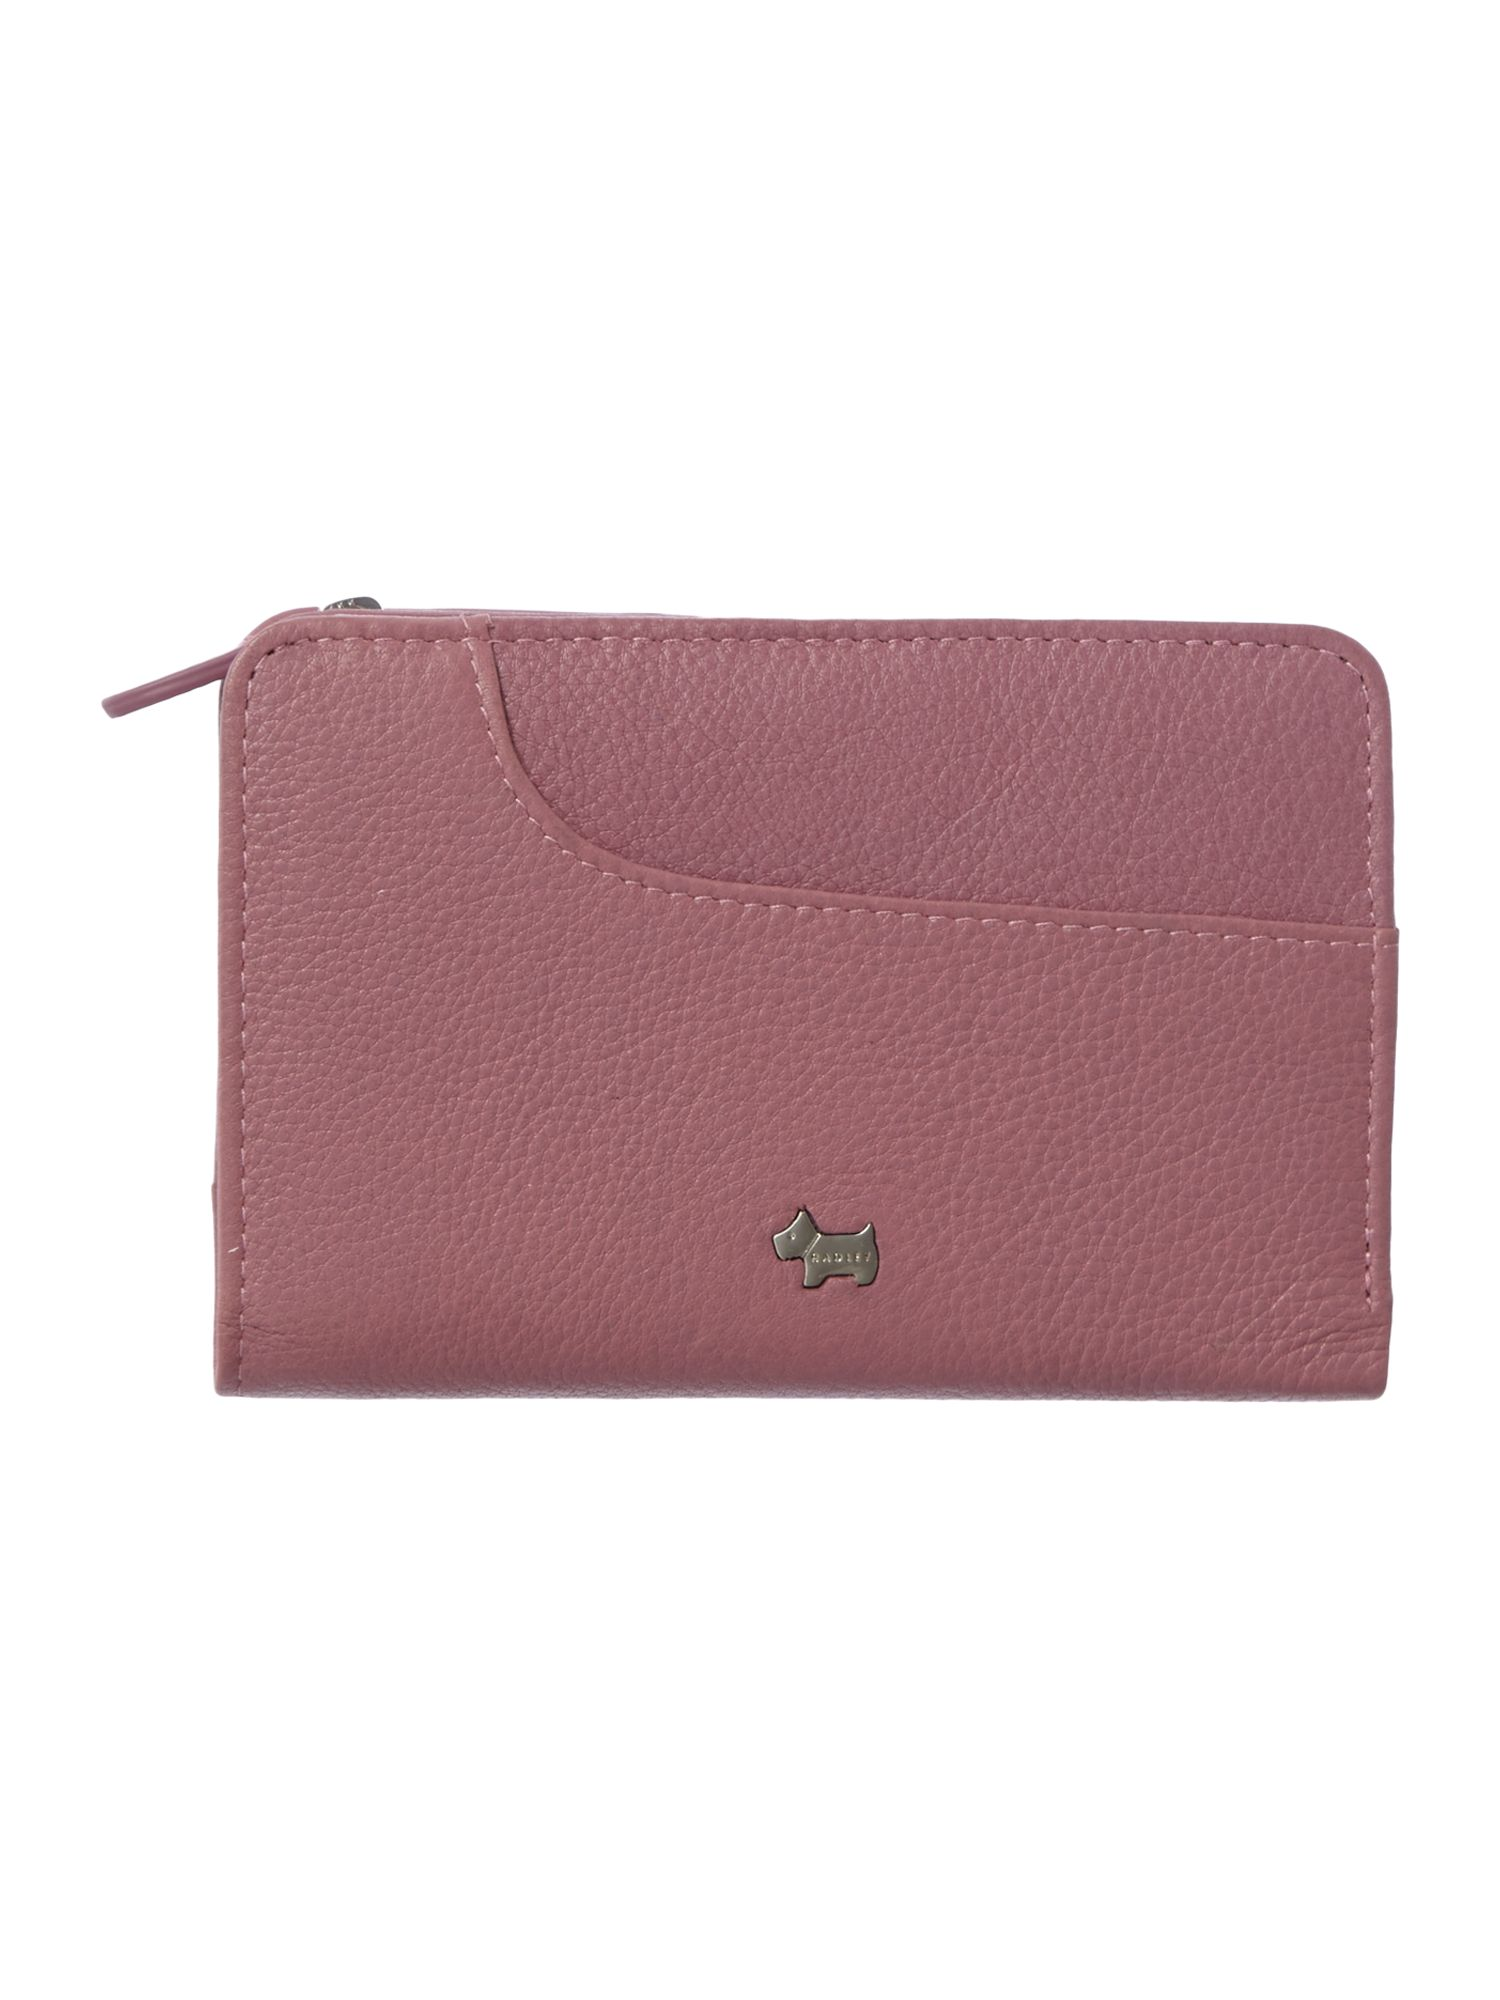 Pocket bag pink medium zip around purse